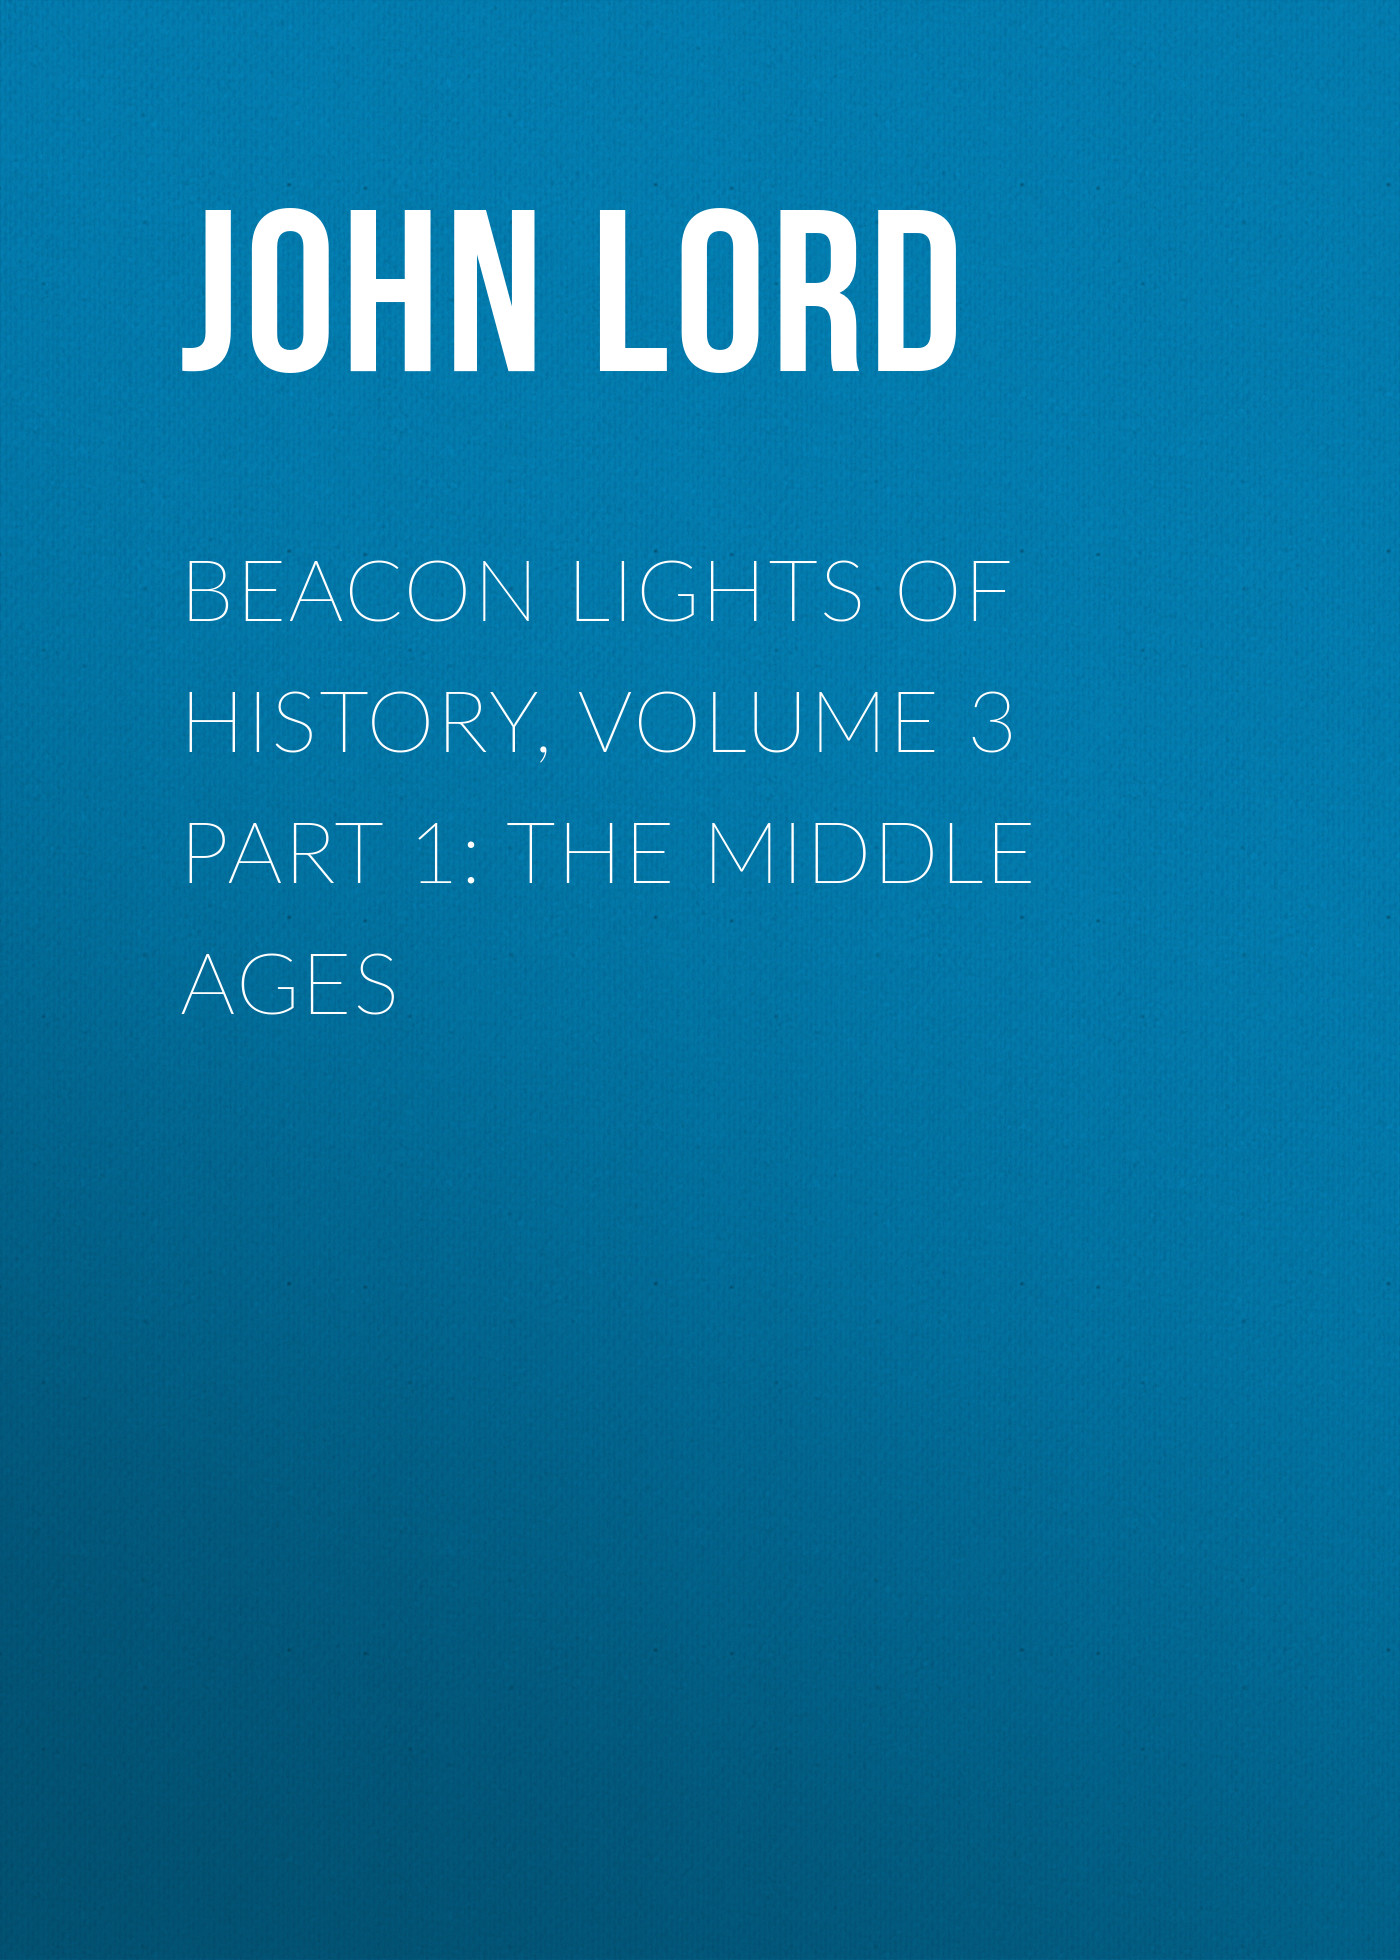 John Lord Beacon Lights of History, Volume 3 part 1: The Middle Ages g l shumway history of western nebraska and its people volume 3 part 1